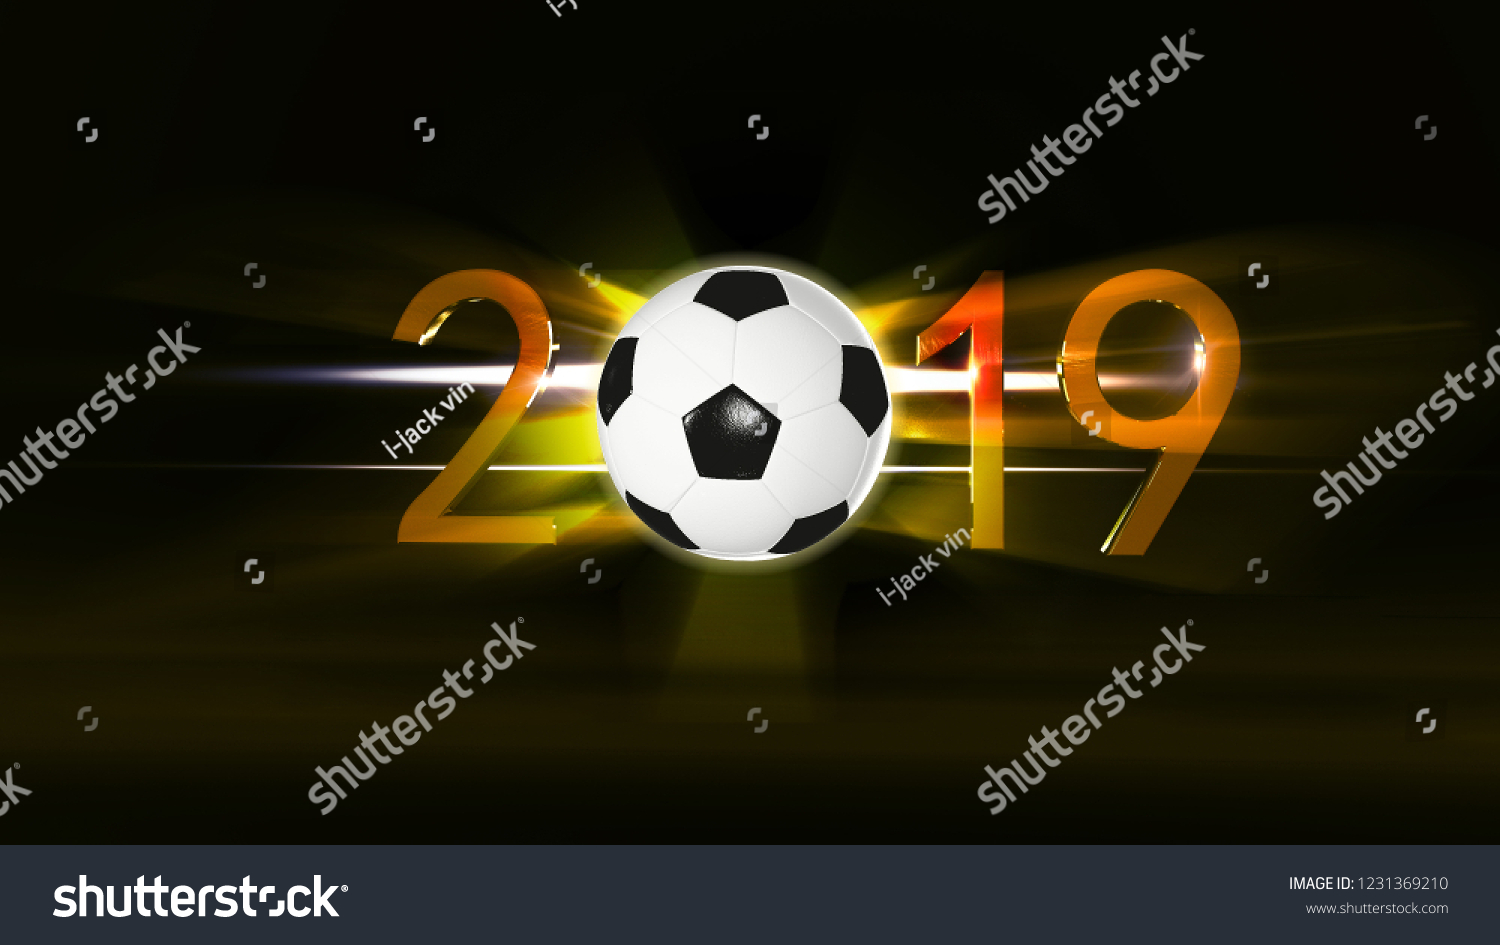 Happy New Year 2019 Backgroundsoccer Concept Stock Illustration